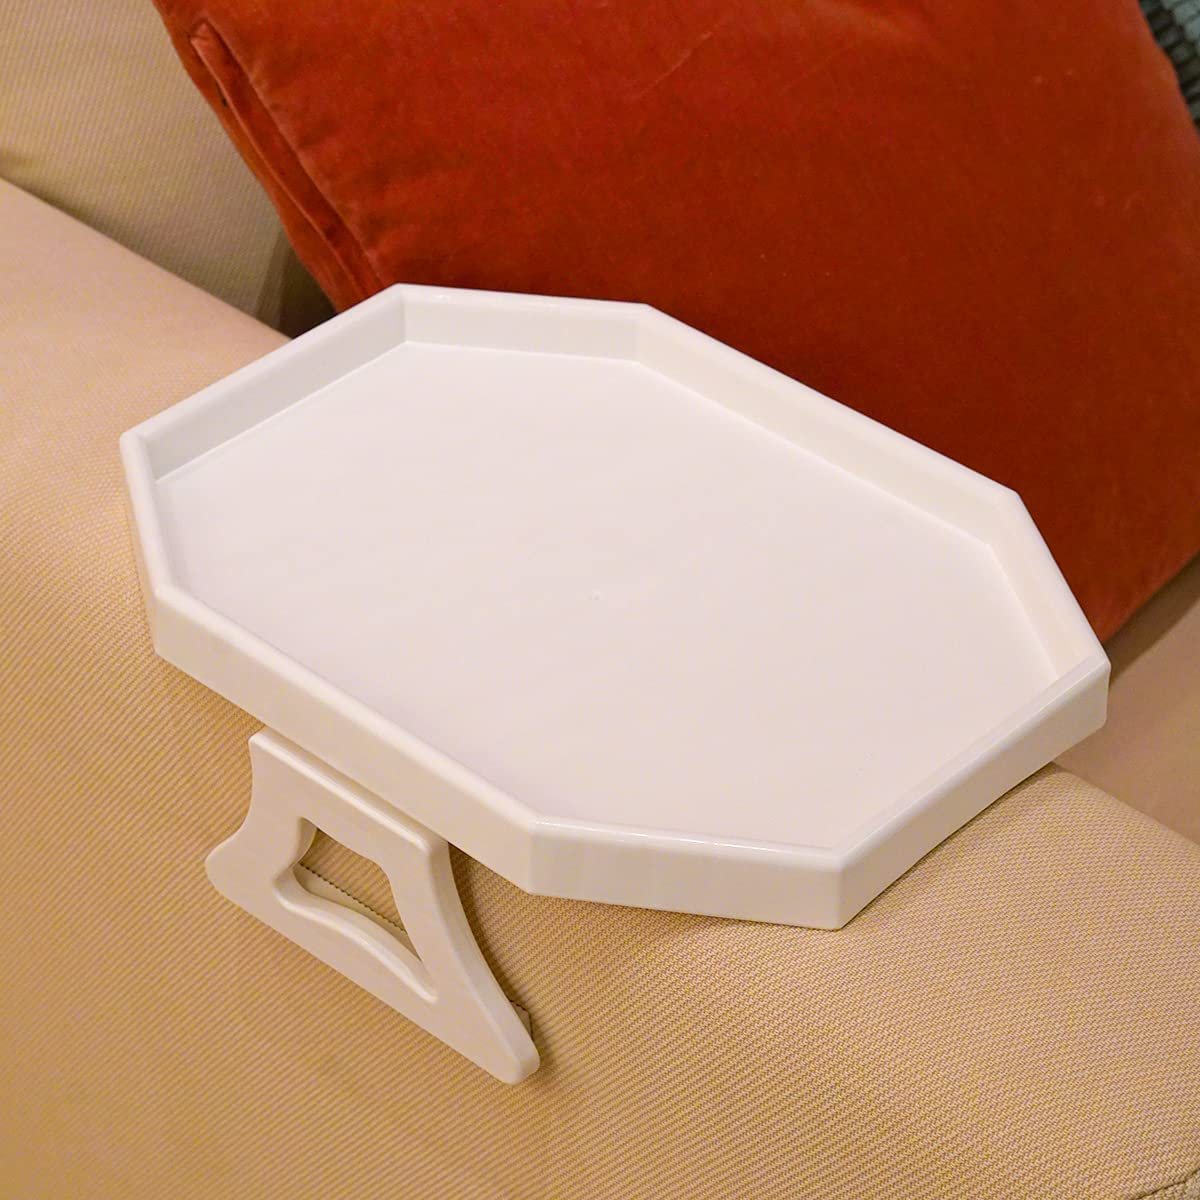 Selling Sofa Online limited product Armrest Clip-On Table Tray